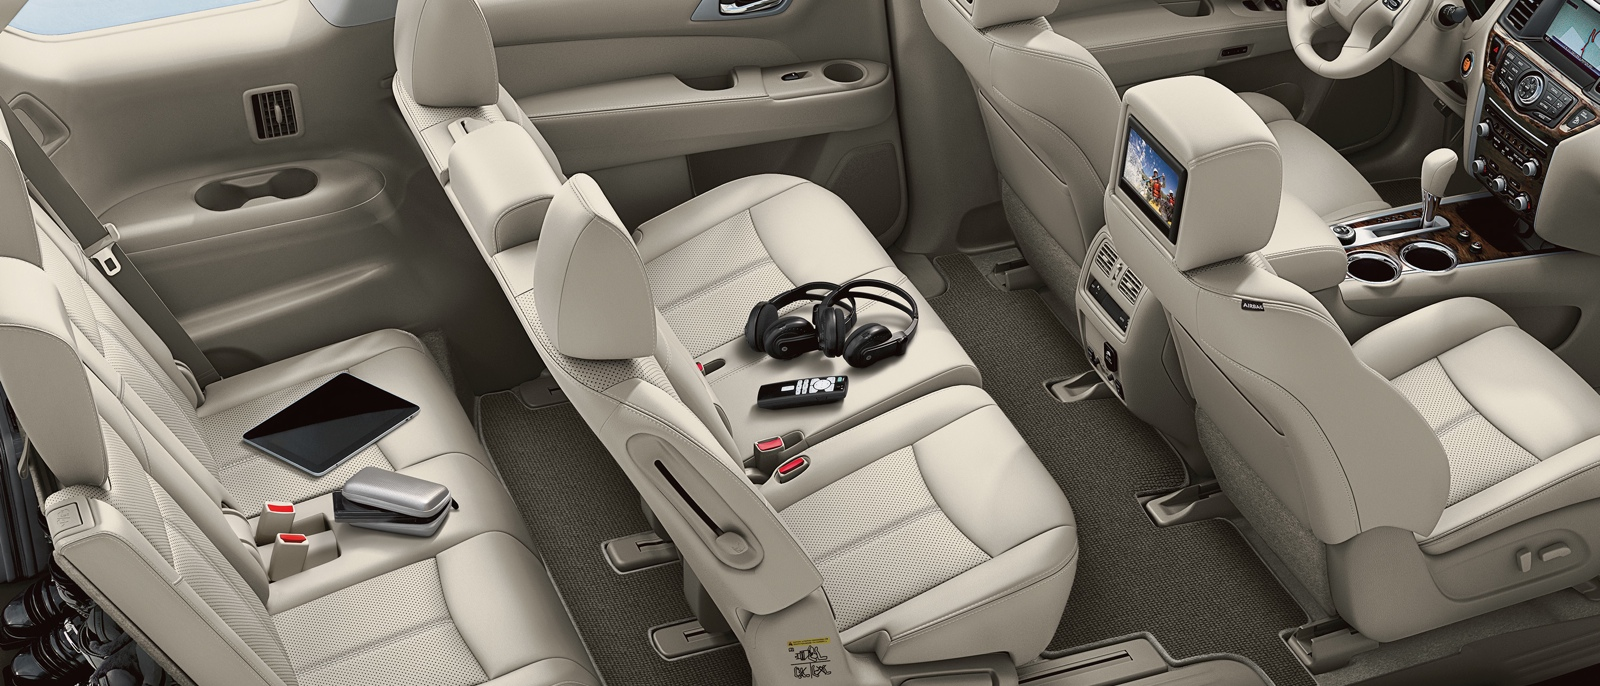 2015 nissan pathfinder indianapolis plainfield for Inside 2007 dvd